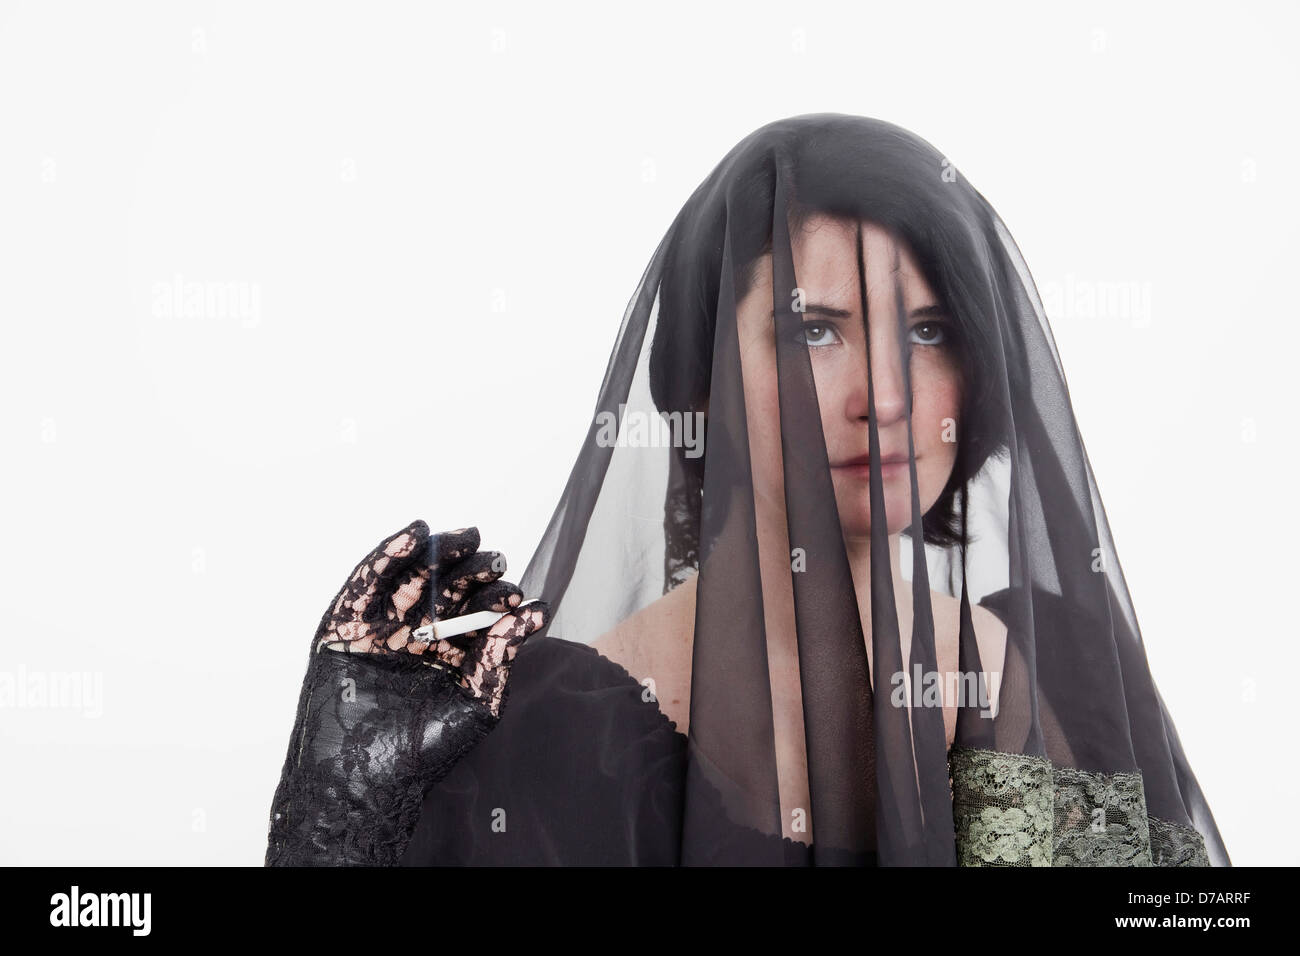 Young Veiled Woman With A Cigarette. - Stock Image